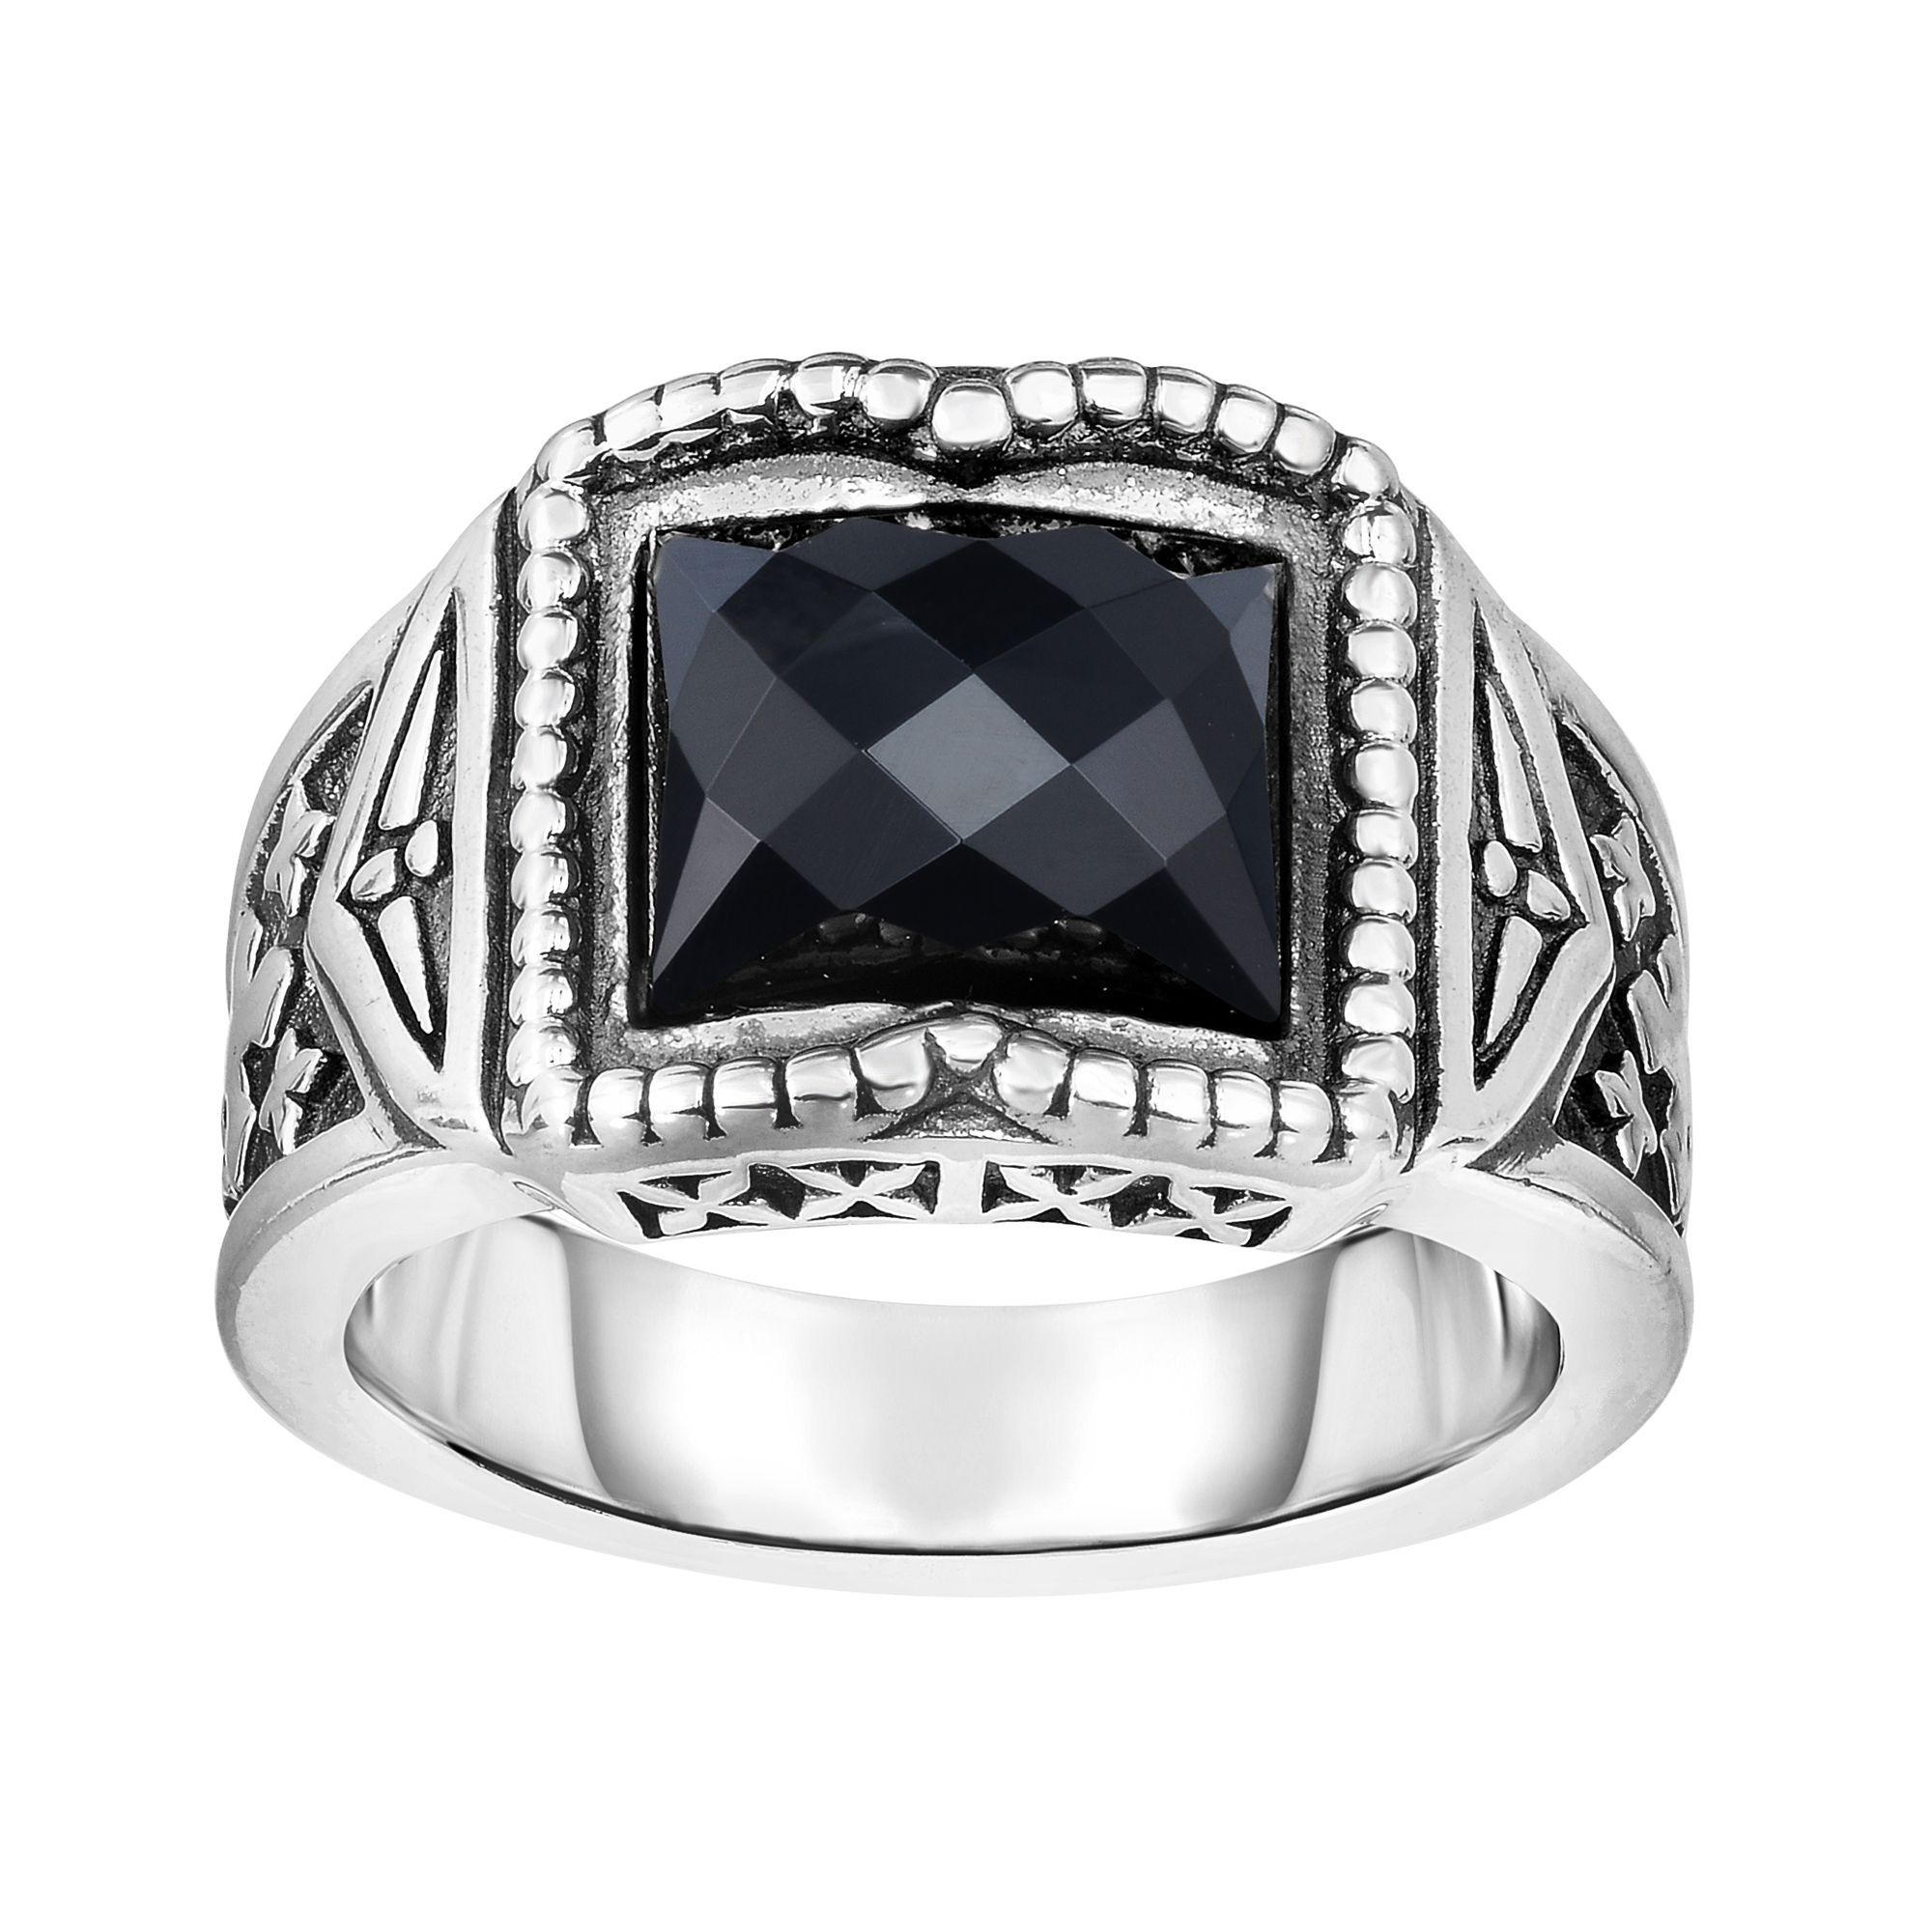 Silver with Oxidized Finish 5-15mm Graduated Mens Ring with 10.6x9.2x5.2mm Black Onyx with Fleur De Lys Symbol Size-9